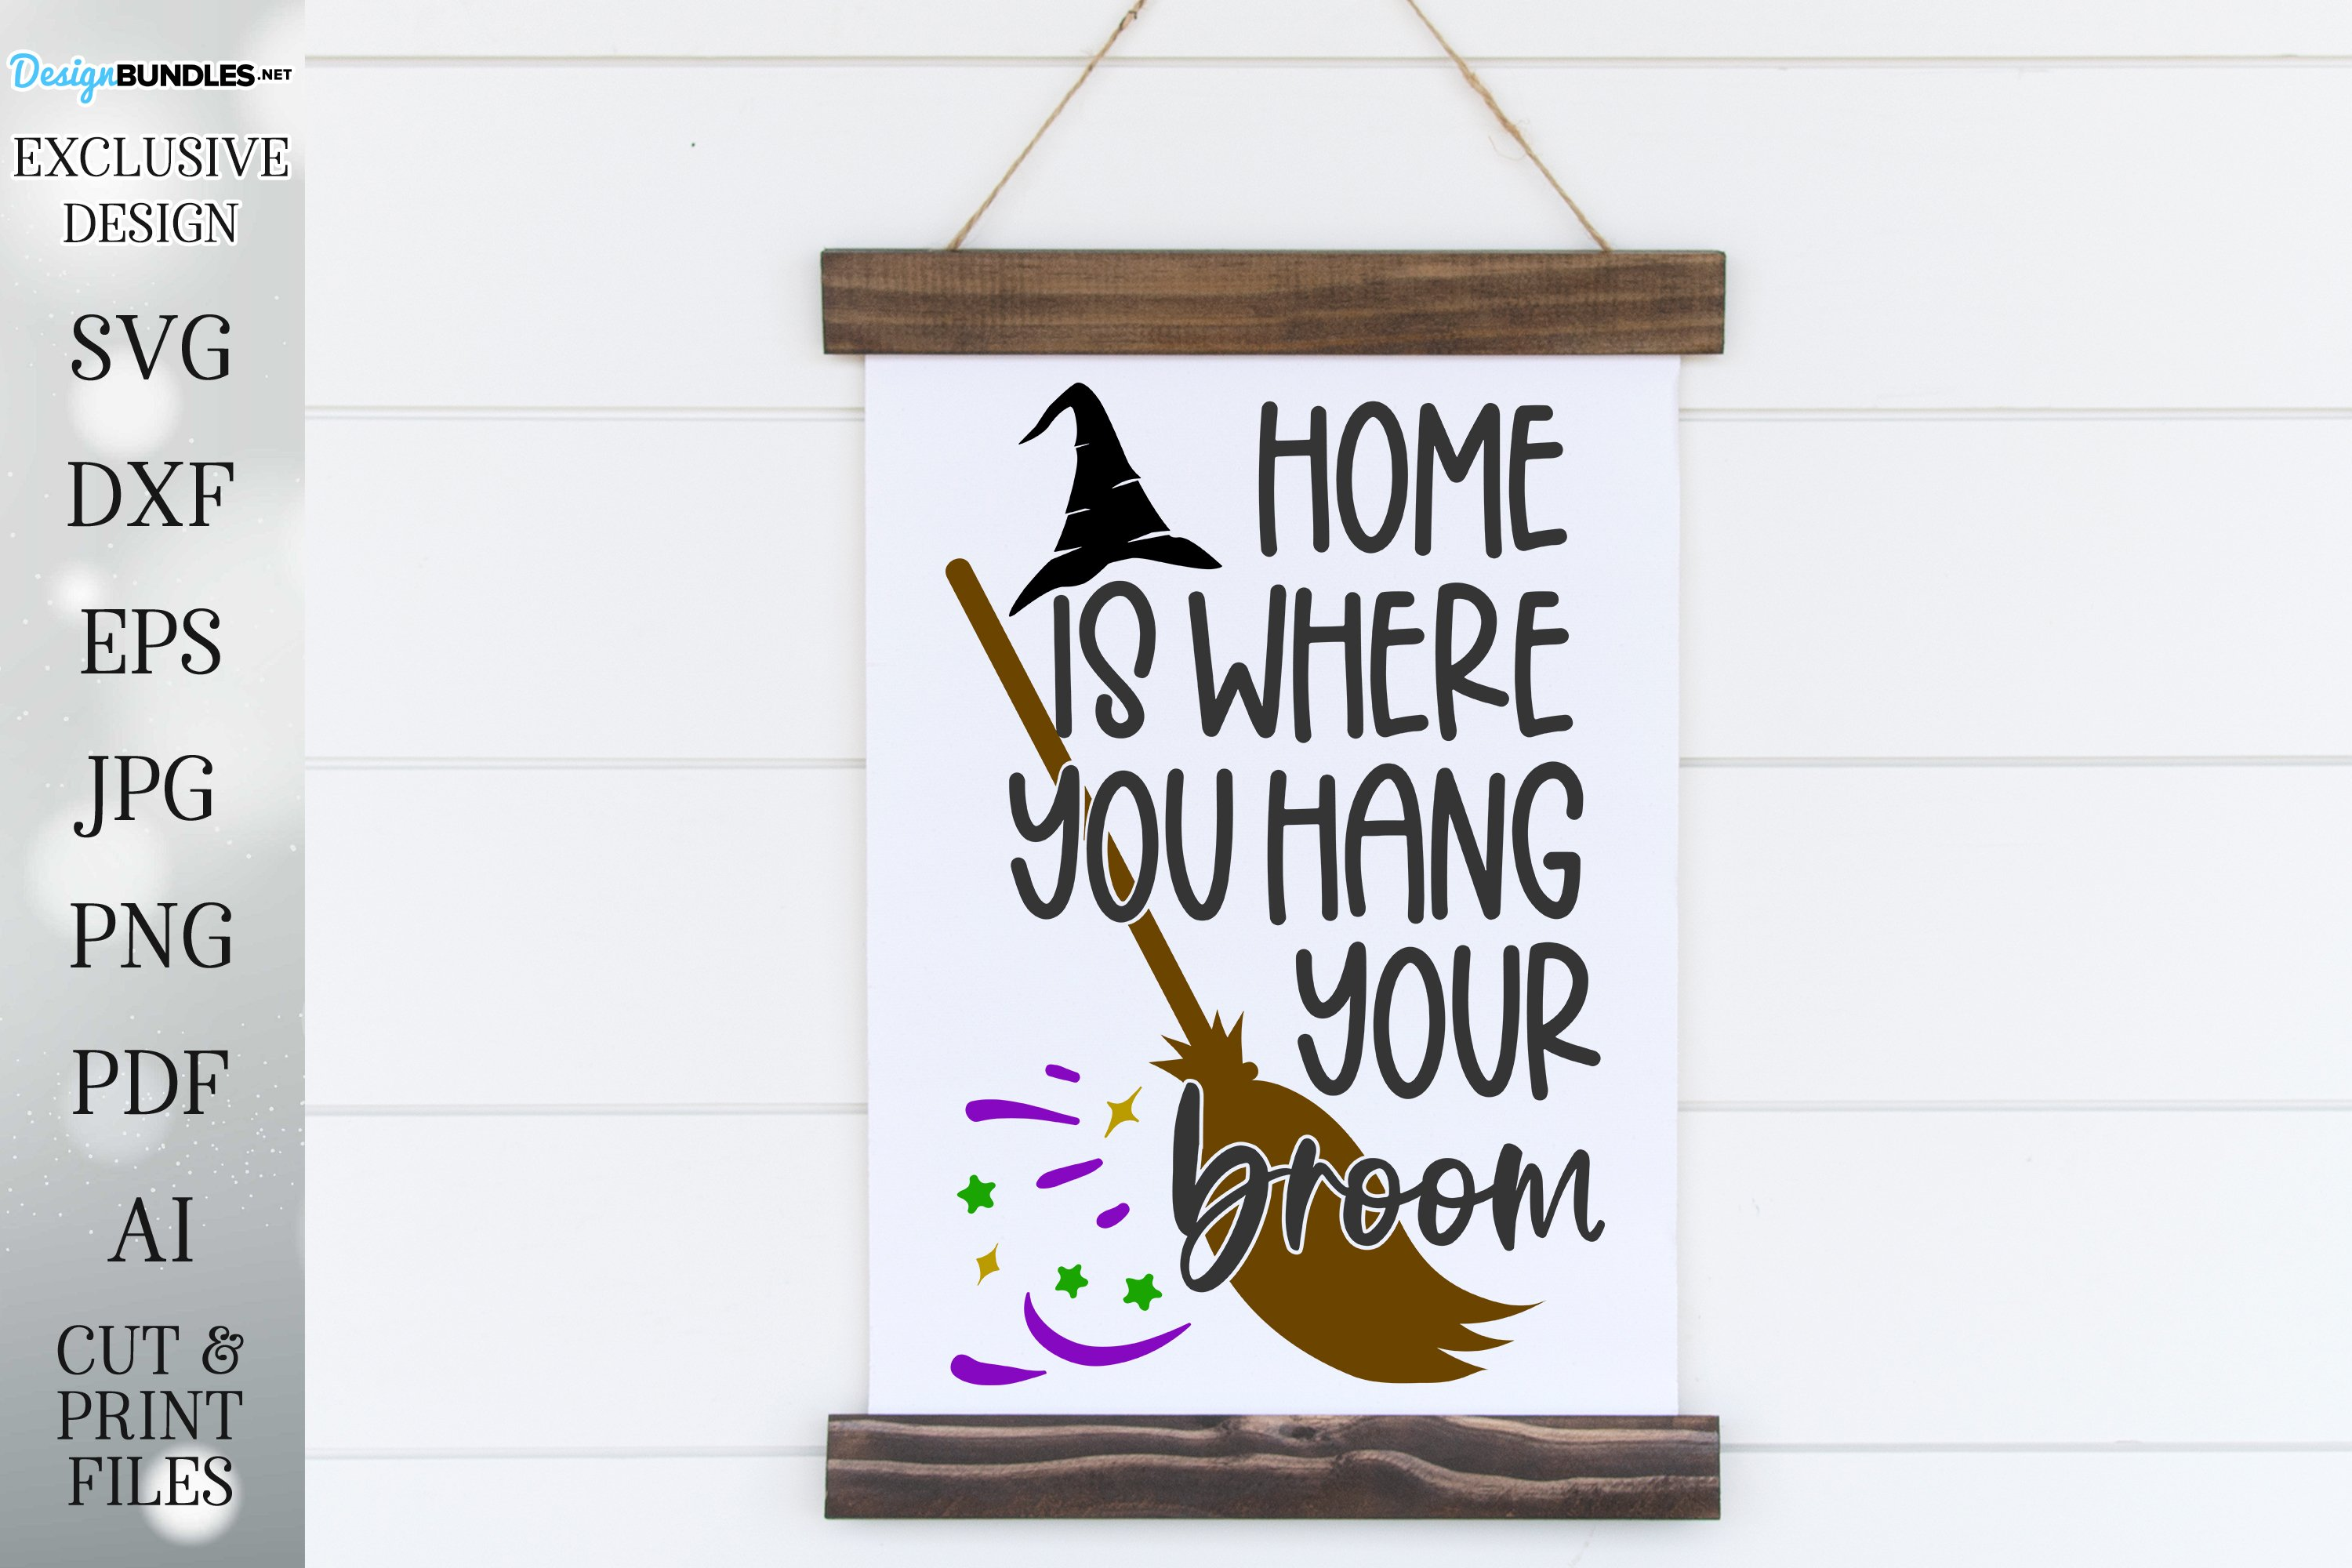 Home Is Where You Hang Your Broom - Halloween Design example image 1